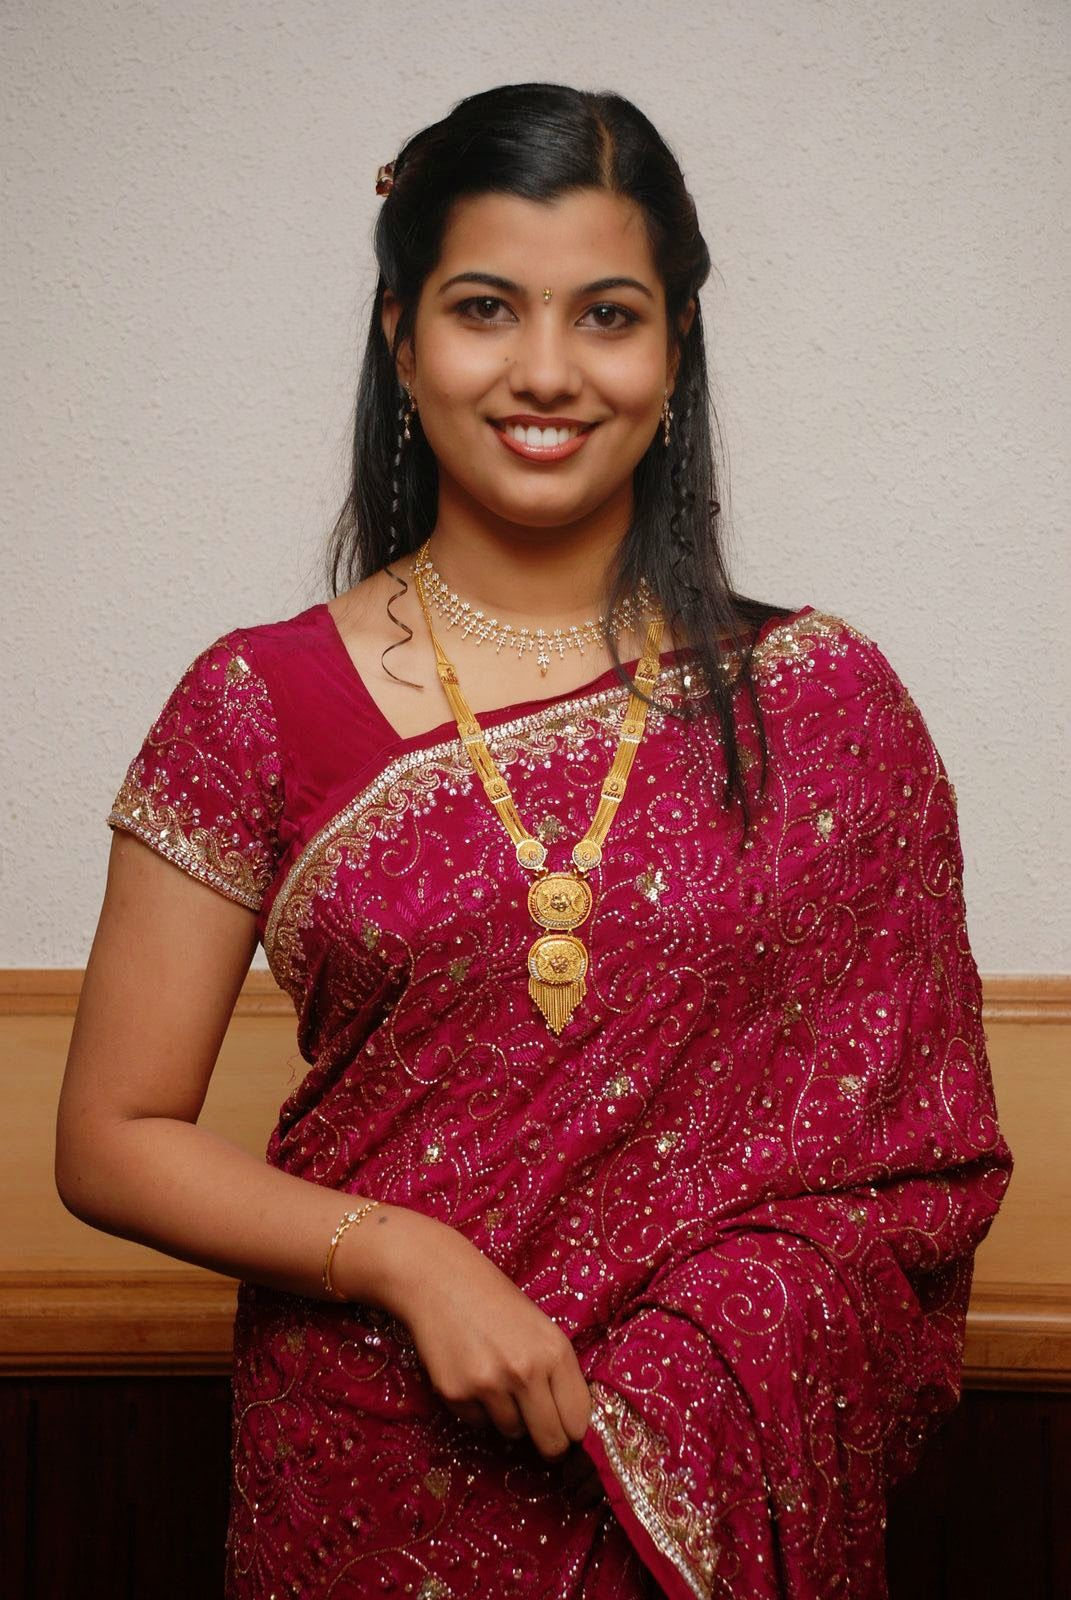 Indian Hot Desi Cute Housewife And Girls Bold Styles Photos